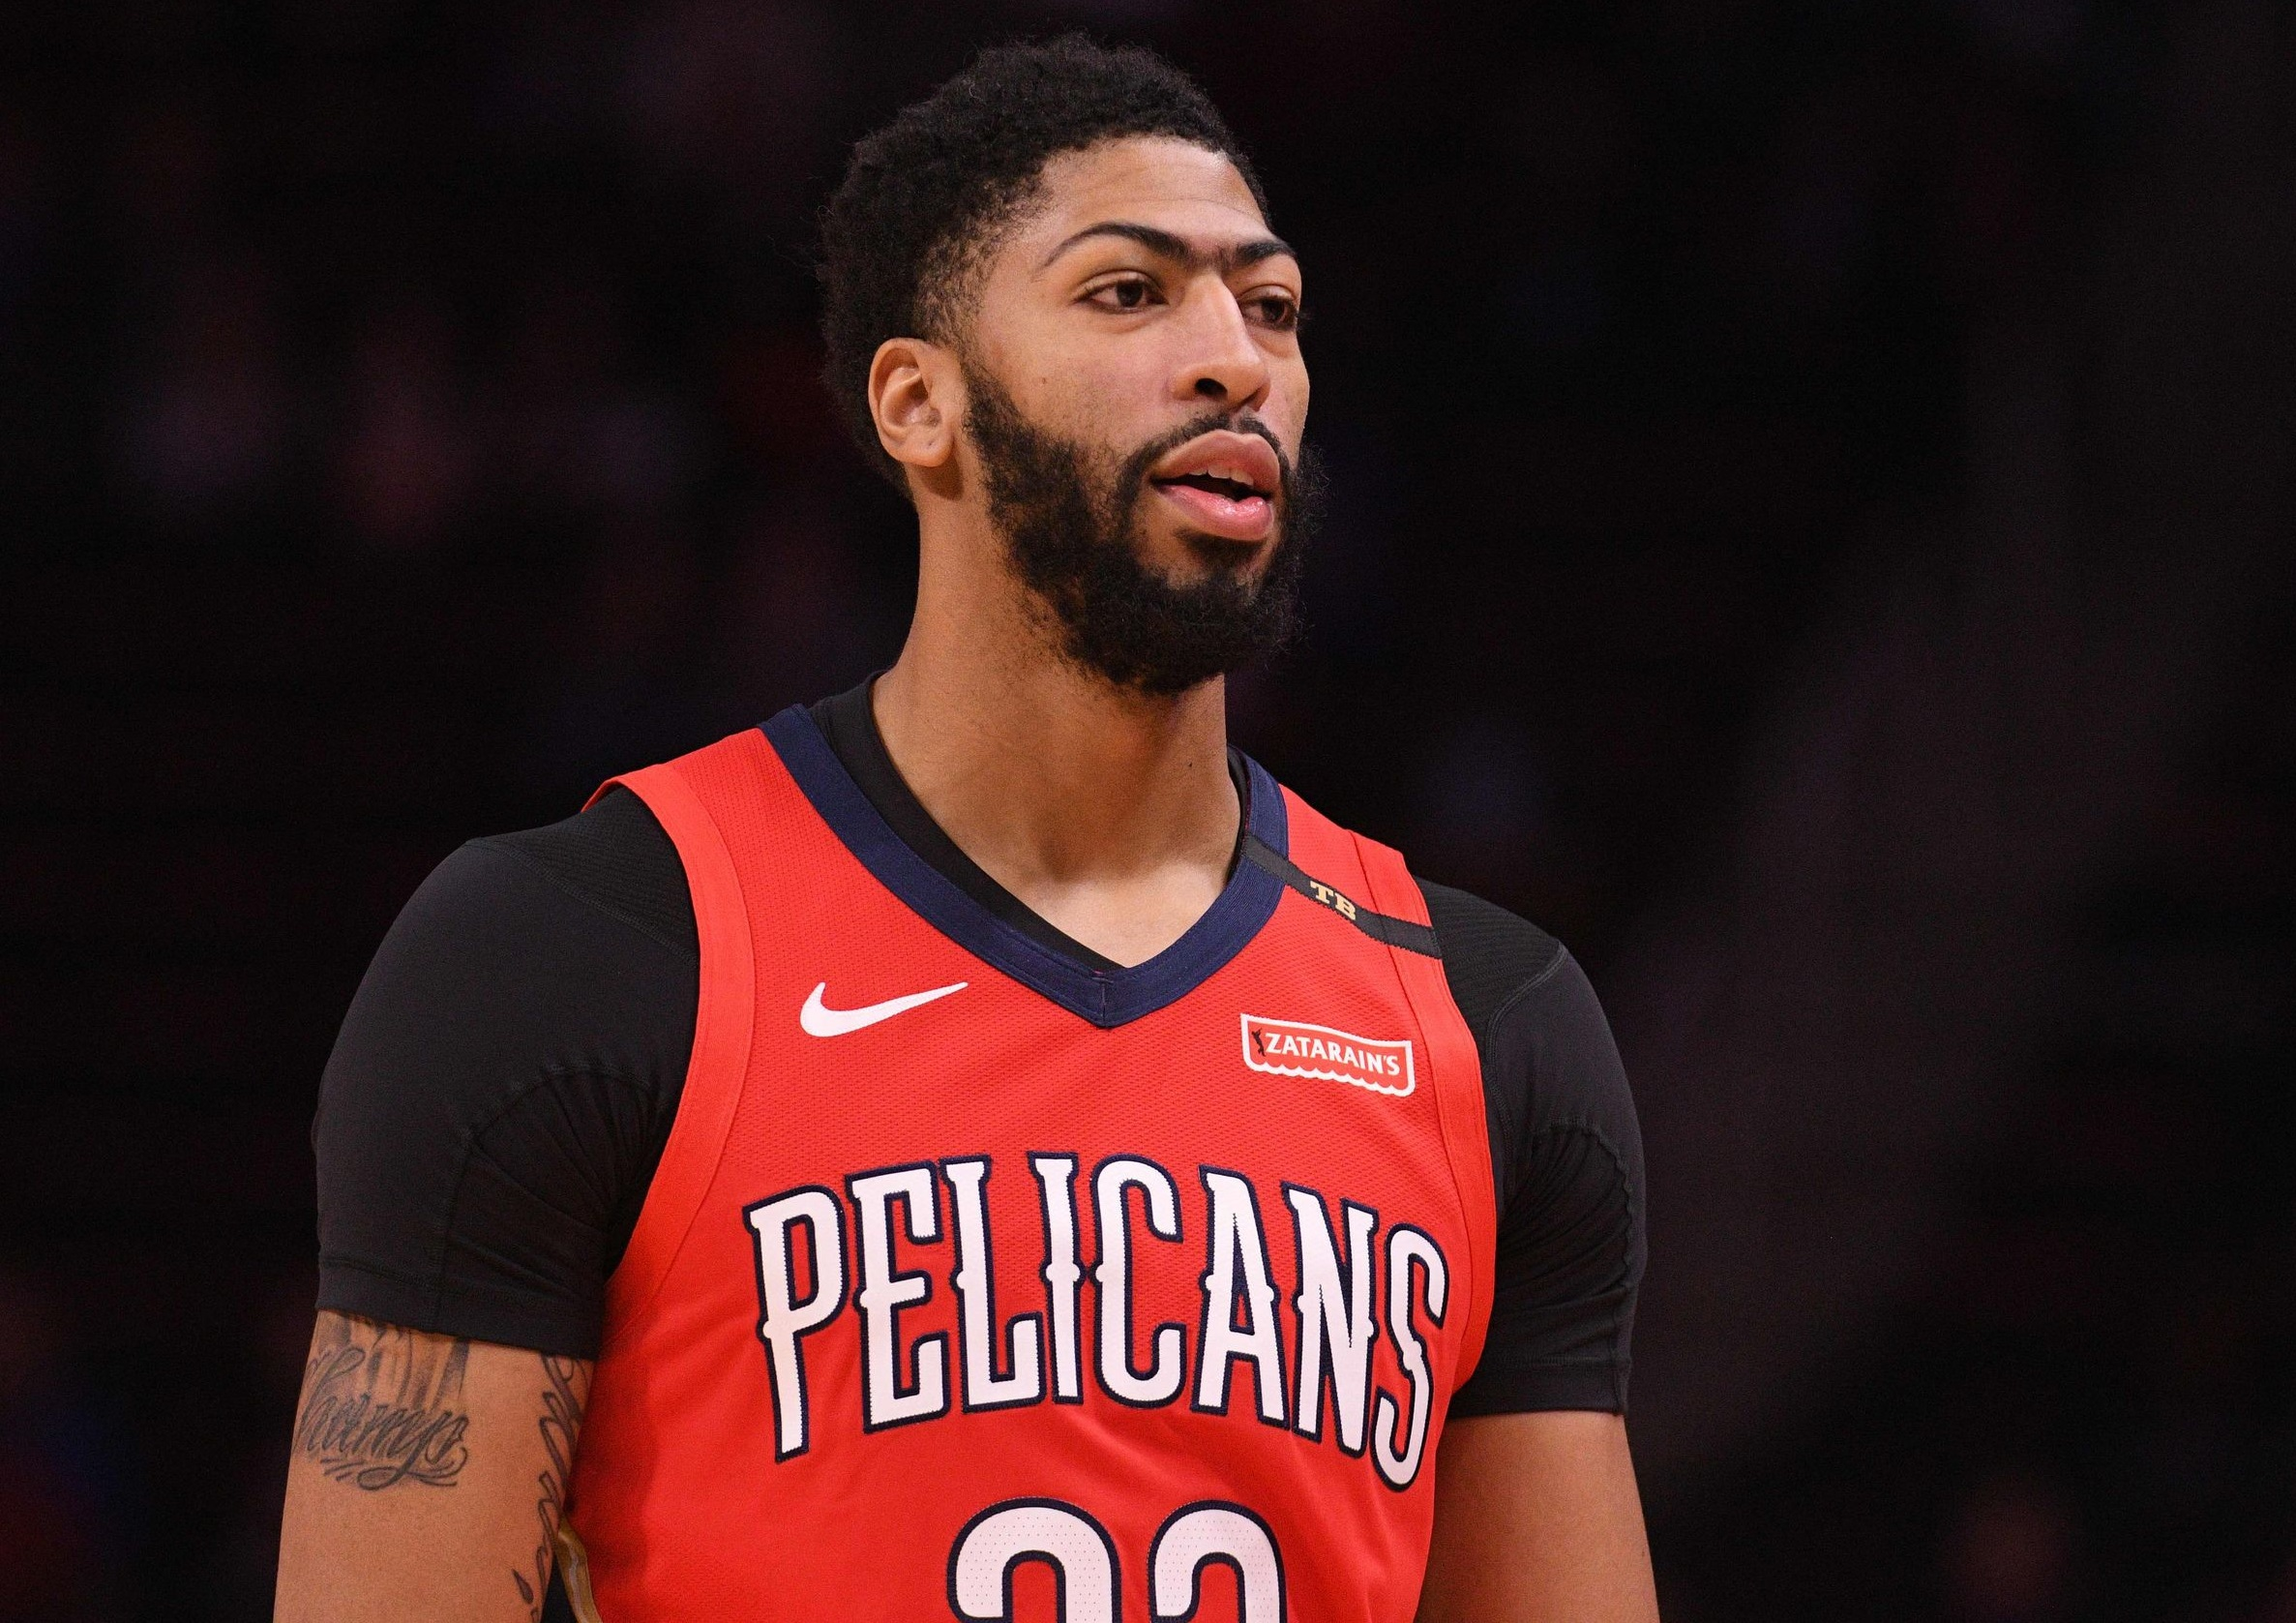 25-year-old NBA star Anthony Davis requested a trade out of the New Orleans Pelicans on Monday.